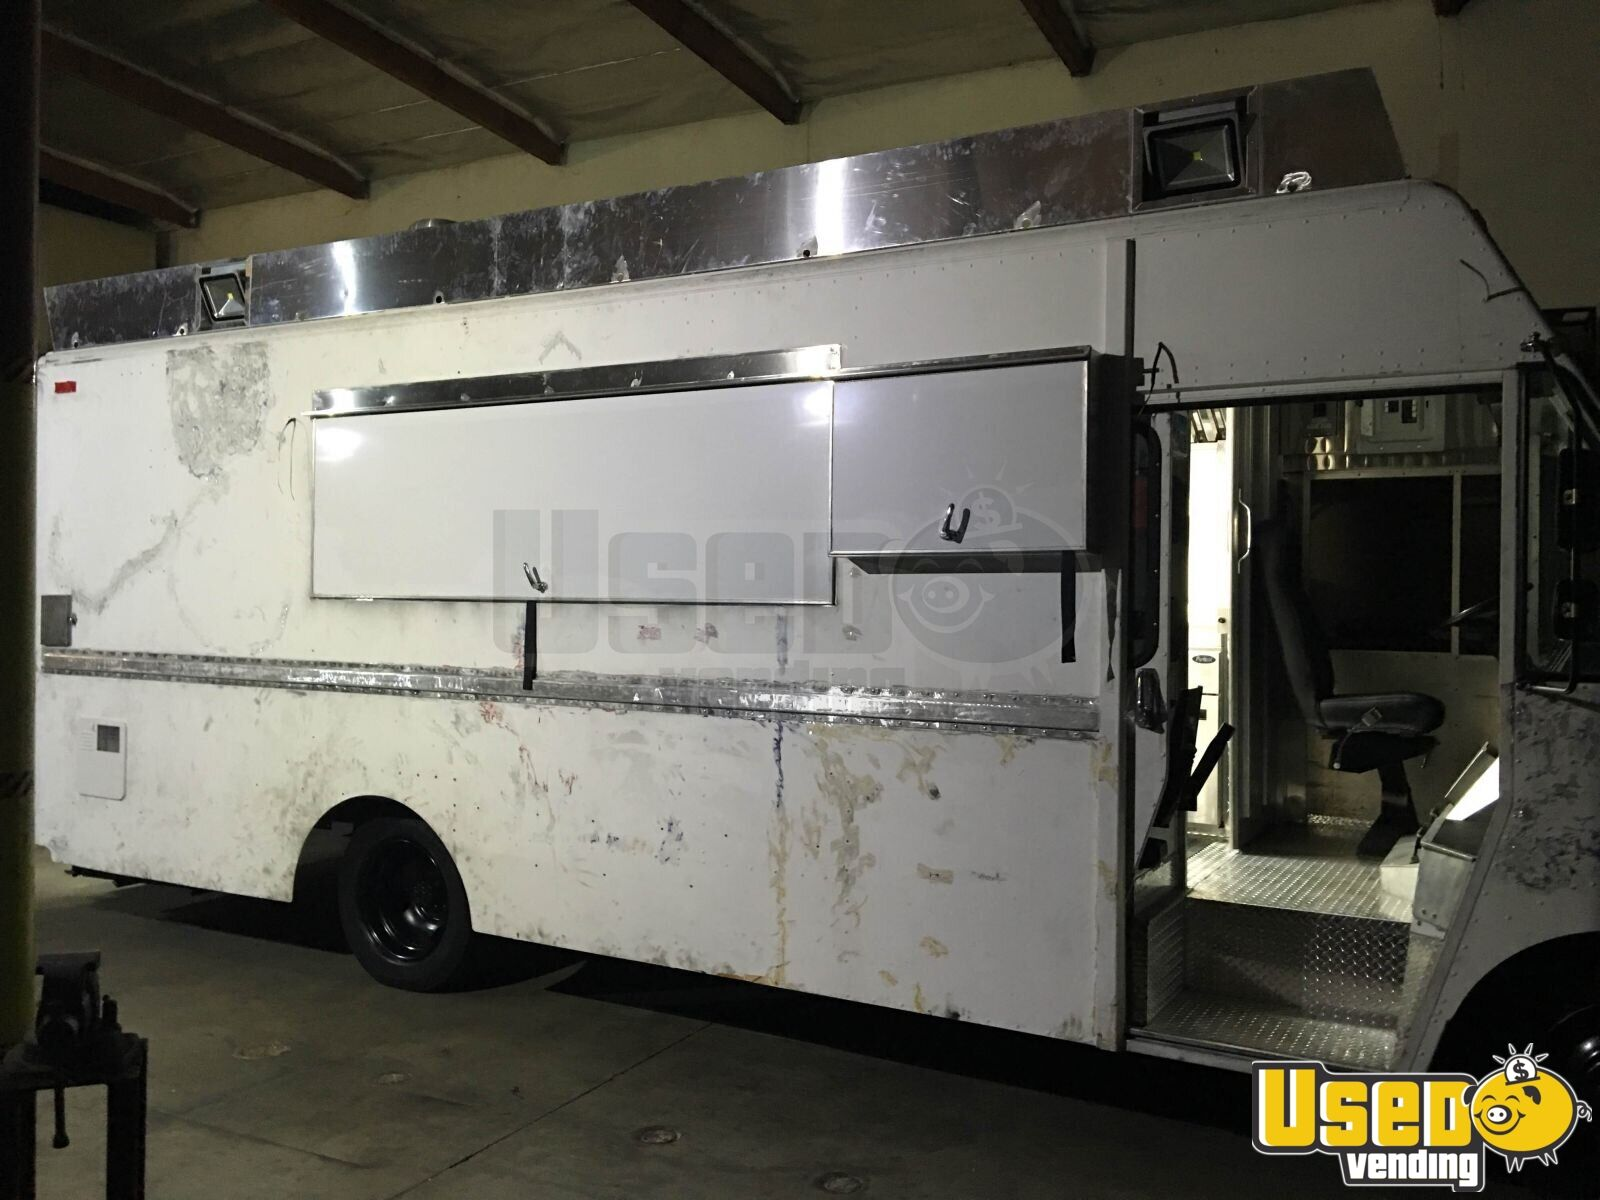 1995 Chevrolet Barbecue Food Truck Air Conditioning California Diesel Engine for Sale - 2